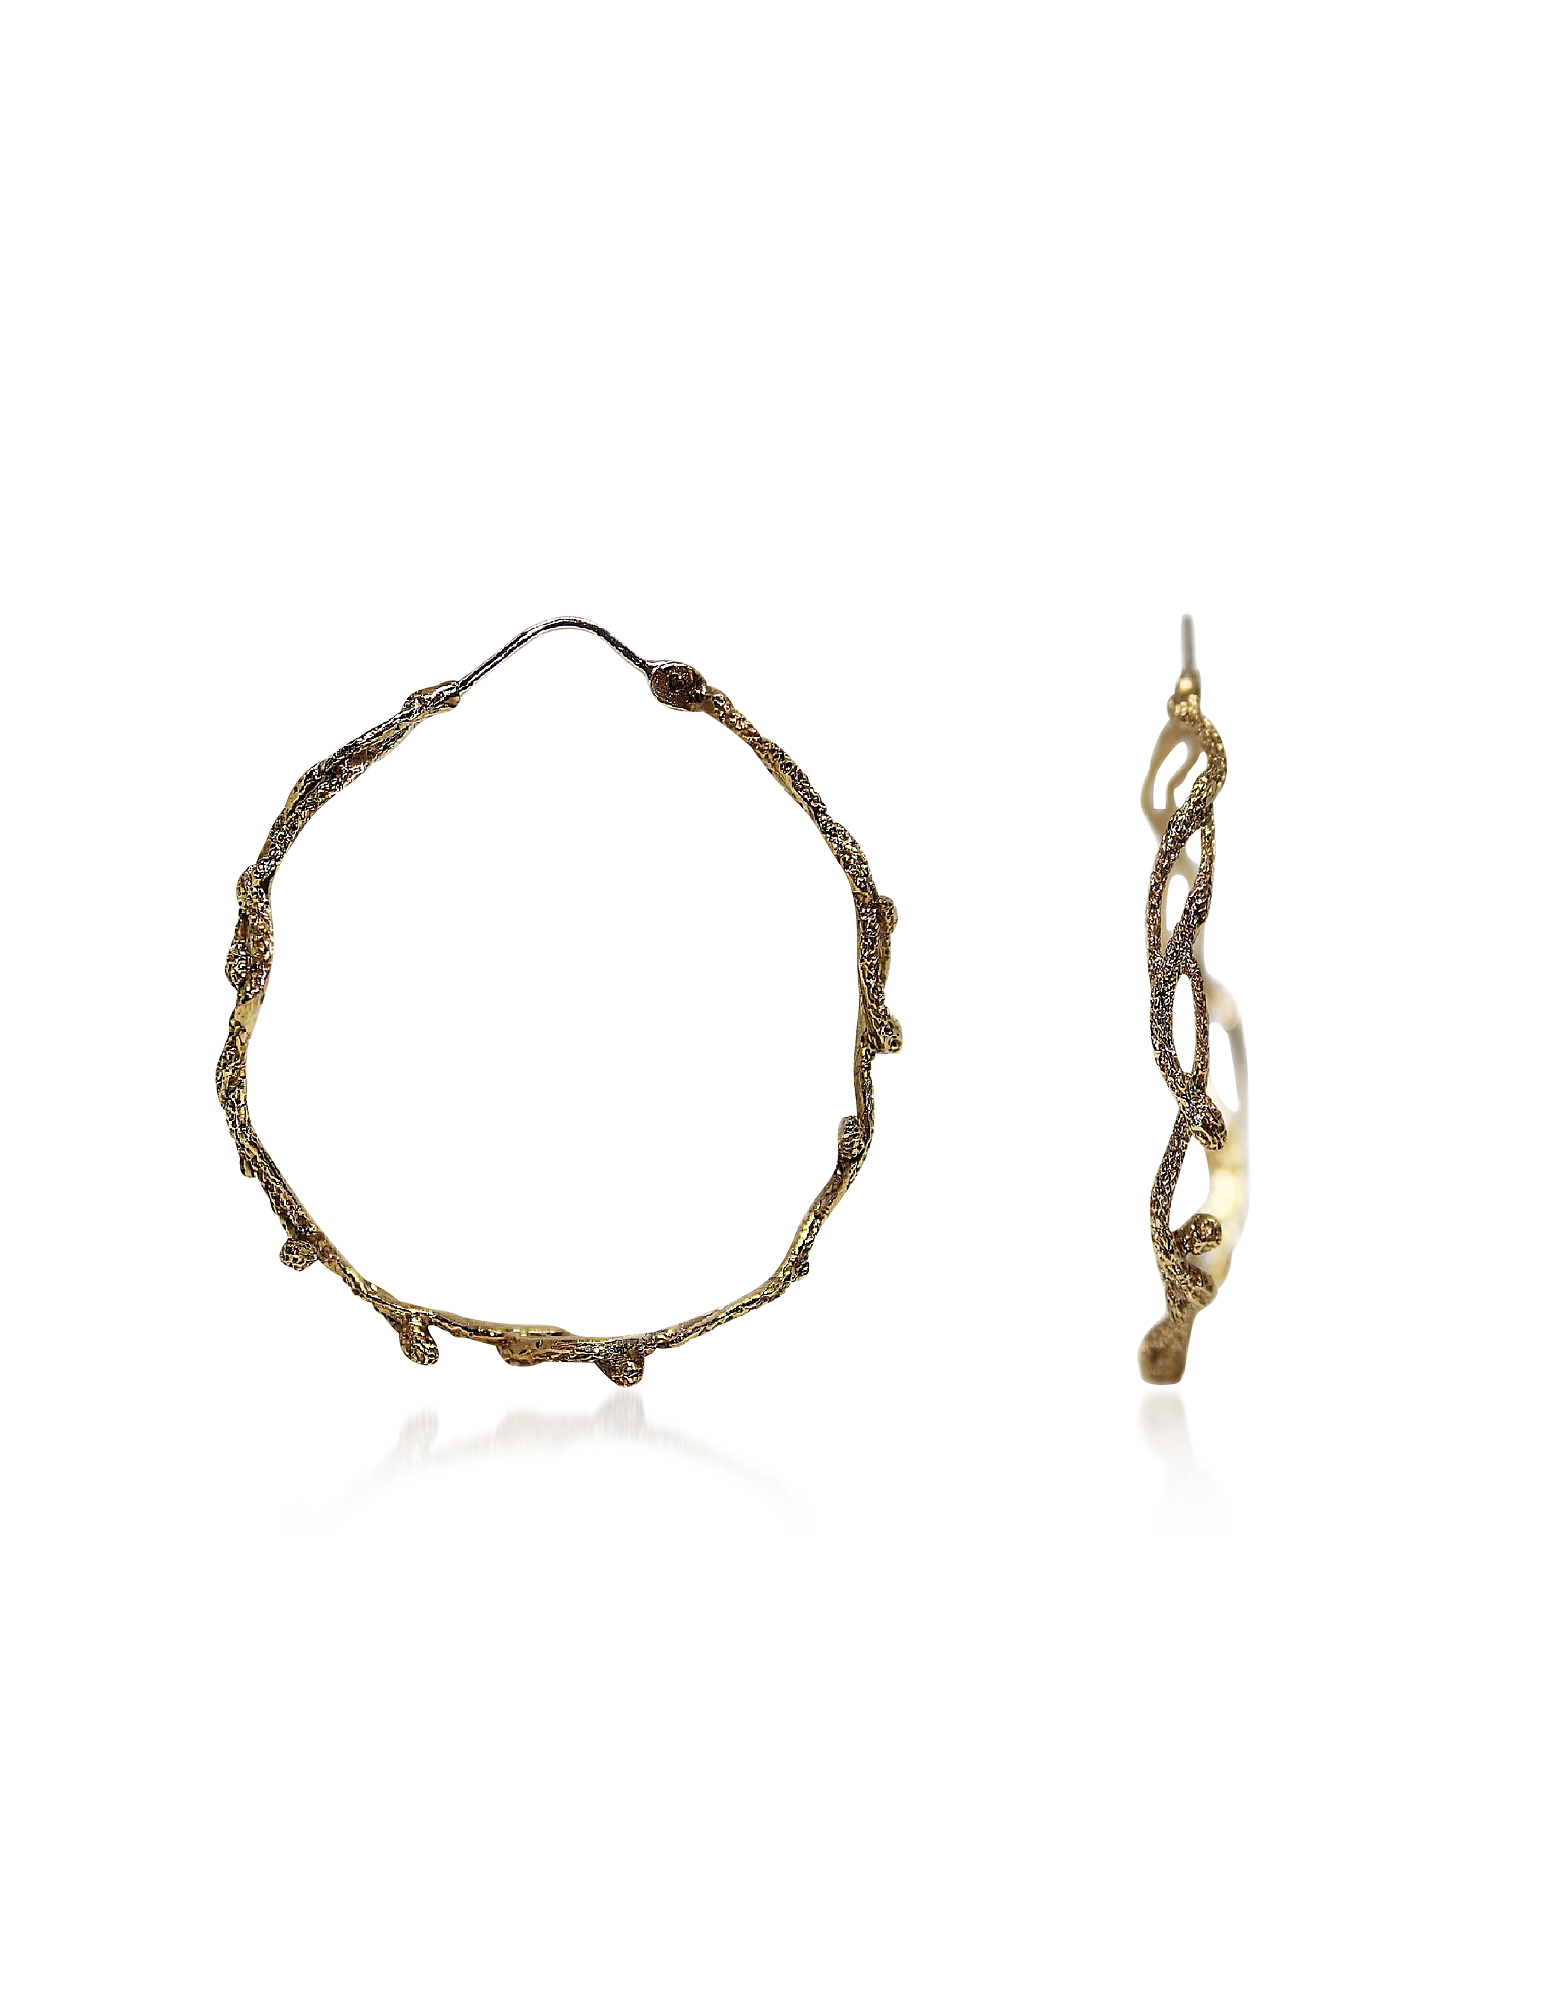 Bronze Hoop Earrings w/ Snakes